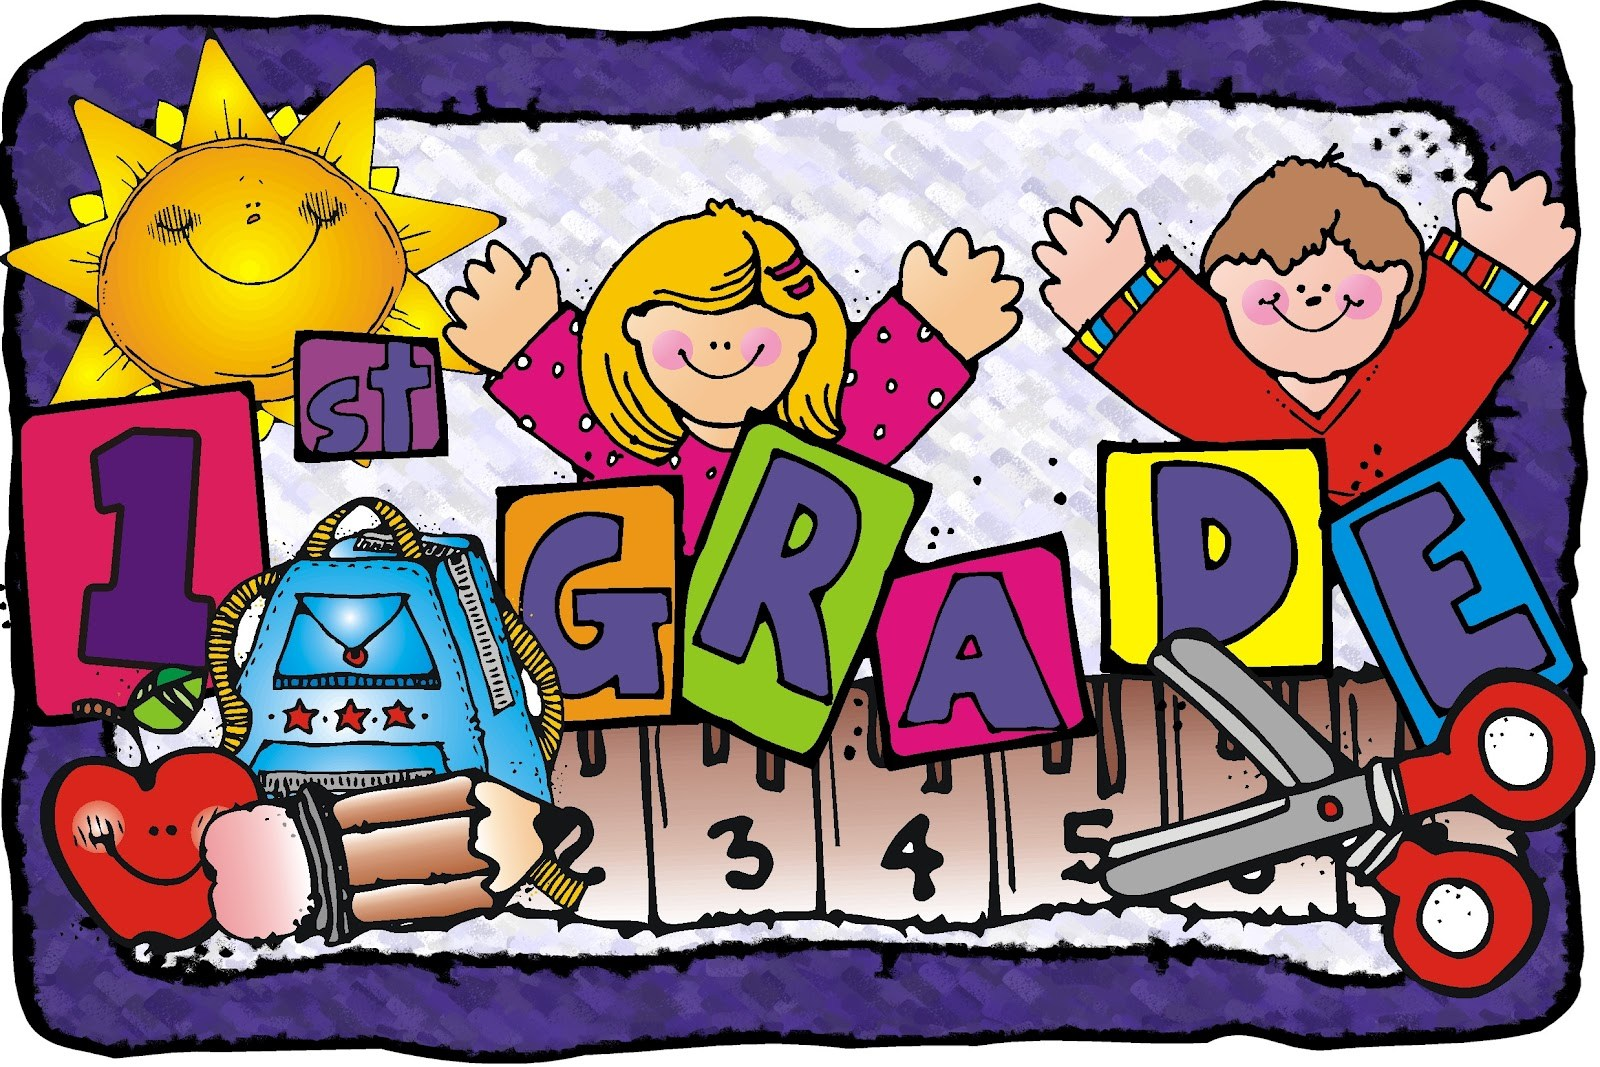 Welcome to grade 1 clipart free First grade clipart welcome to grade 1 - 44 transparent clip ... free